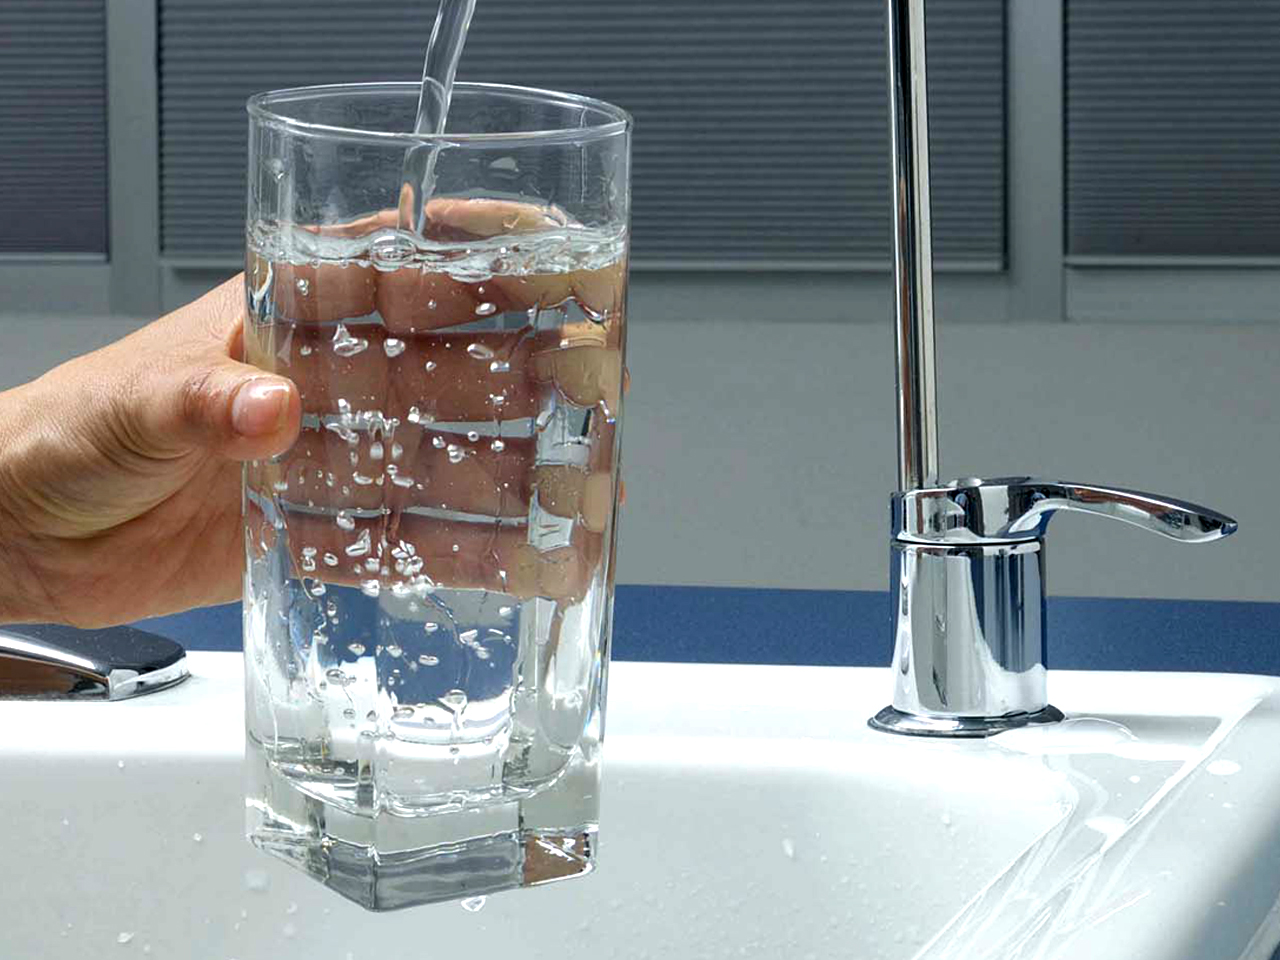 Is The Fluoride in Your Tap Water Linked to Diabetes?